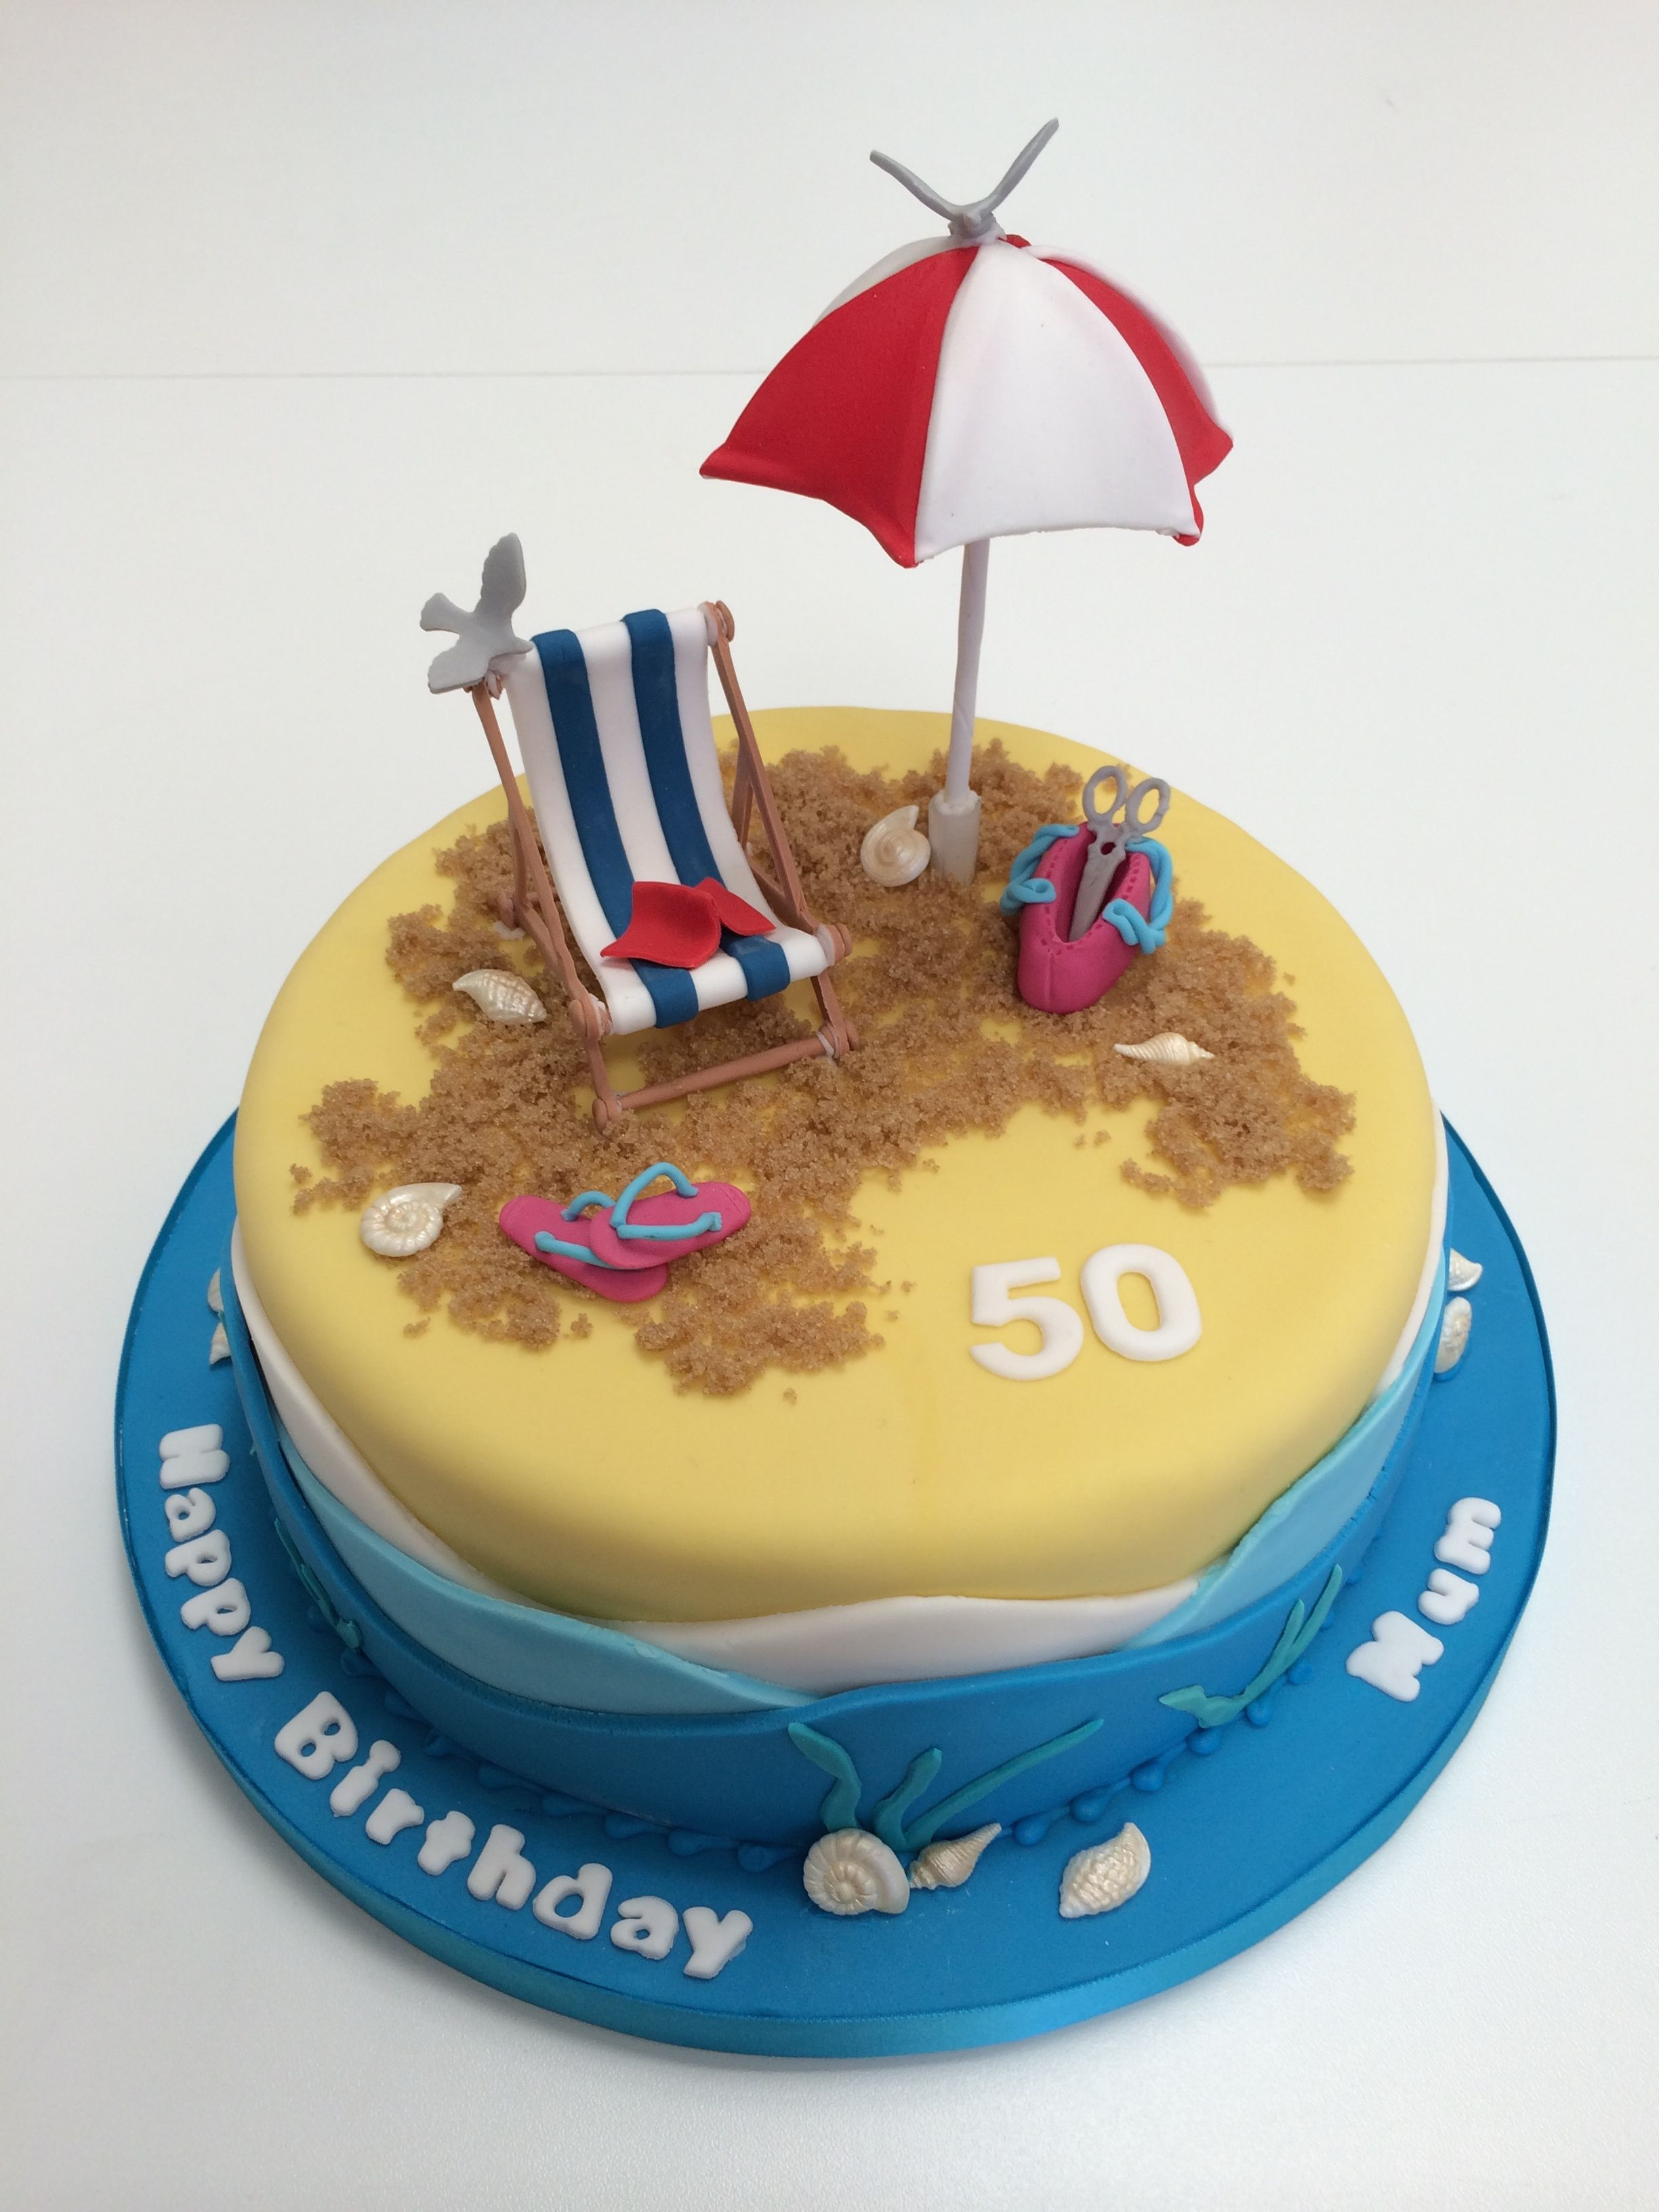 Cute Beach Themed Cake Complete With Sun Umbrella Deckchair And